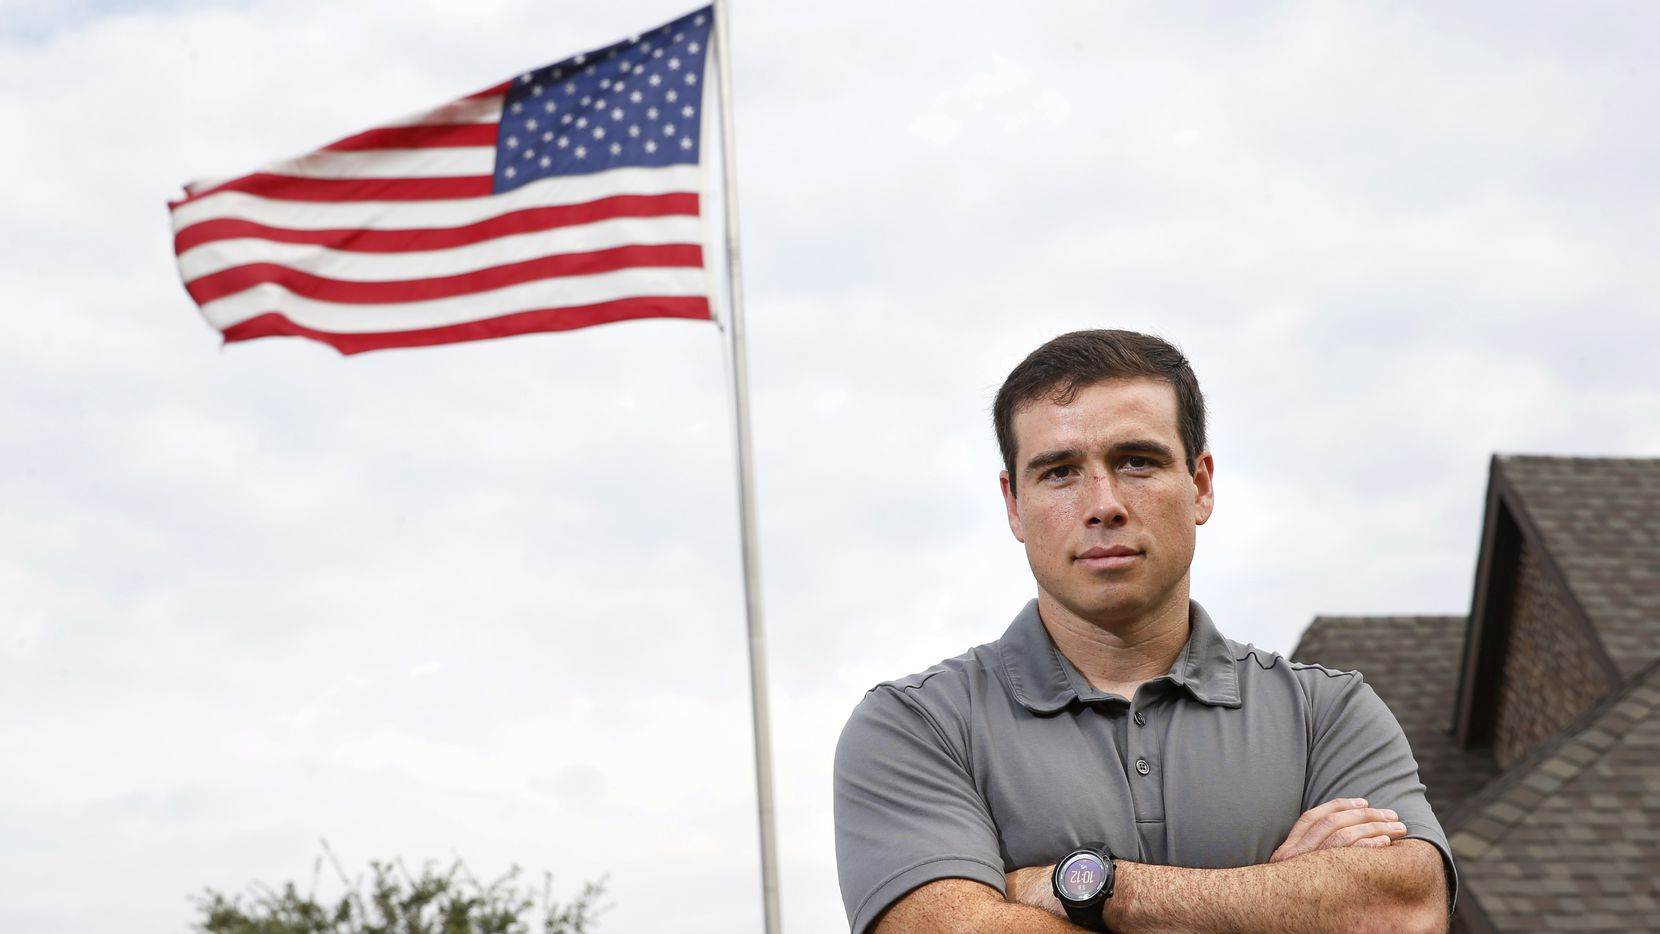 Veteran John Wayne Walding fought in Iraq and Afghanistan. He lost a leg and afterward became the first Green Beret amputee to serve as a certified sniper instructor. He thought USAA Insurance had his back, but learned otherwise.